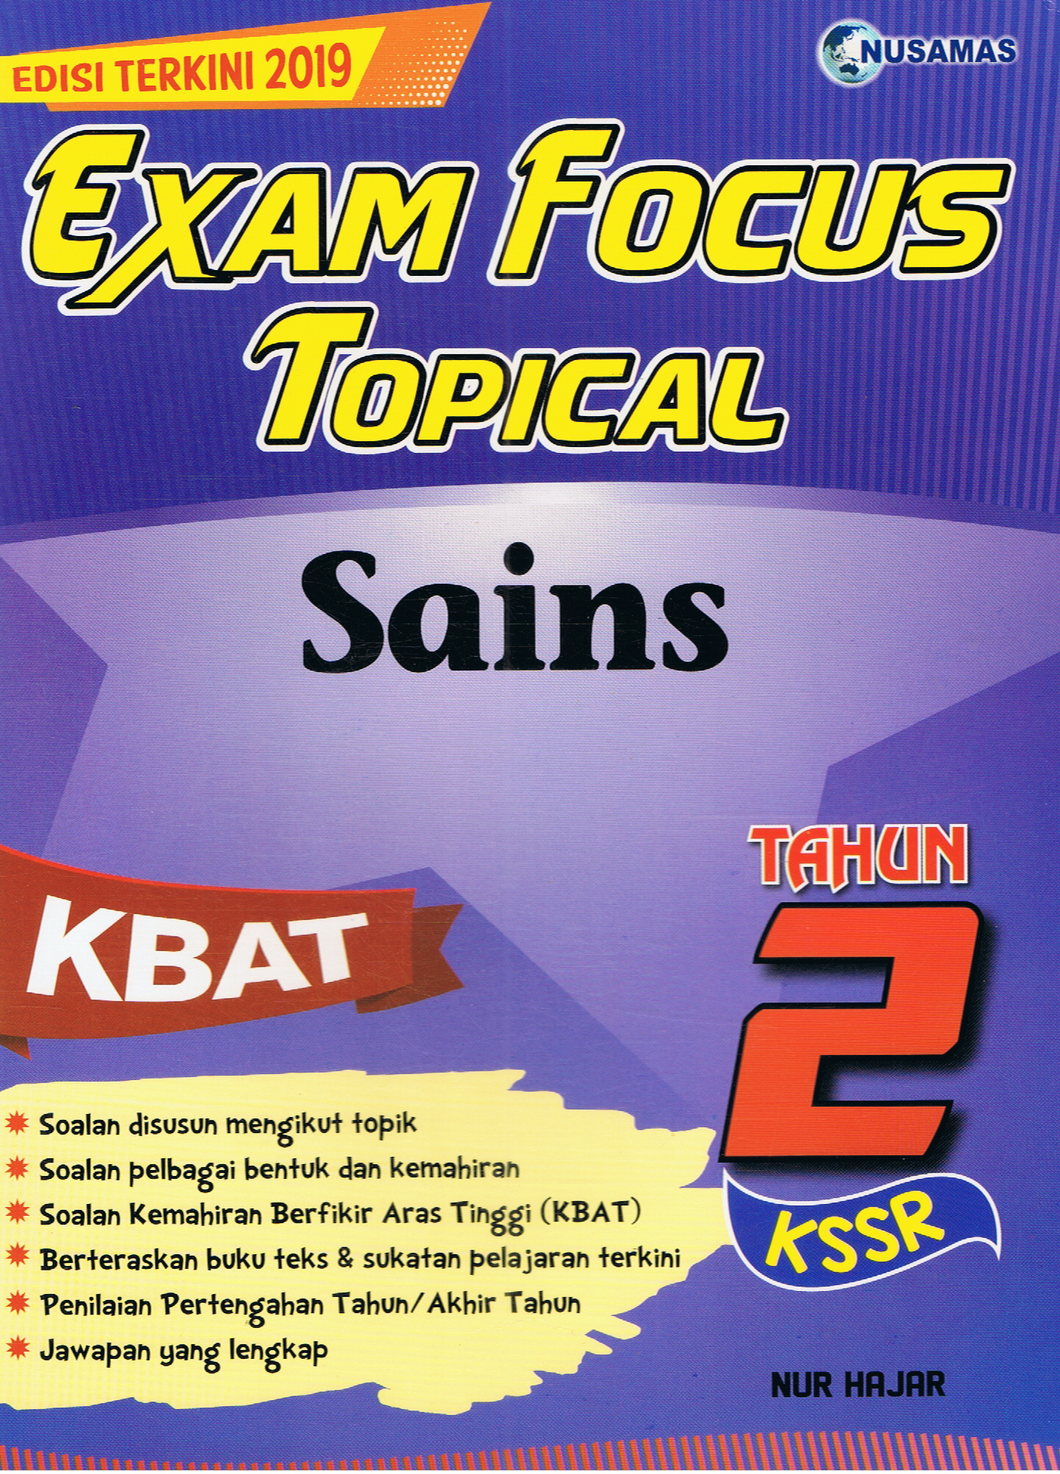 Exam Focus Topical: Sains Tahun 2